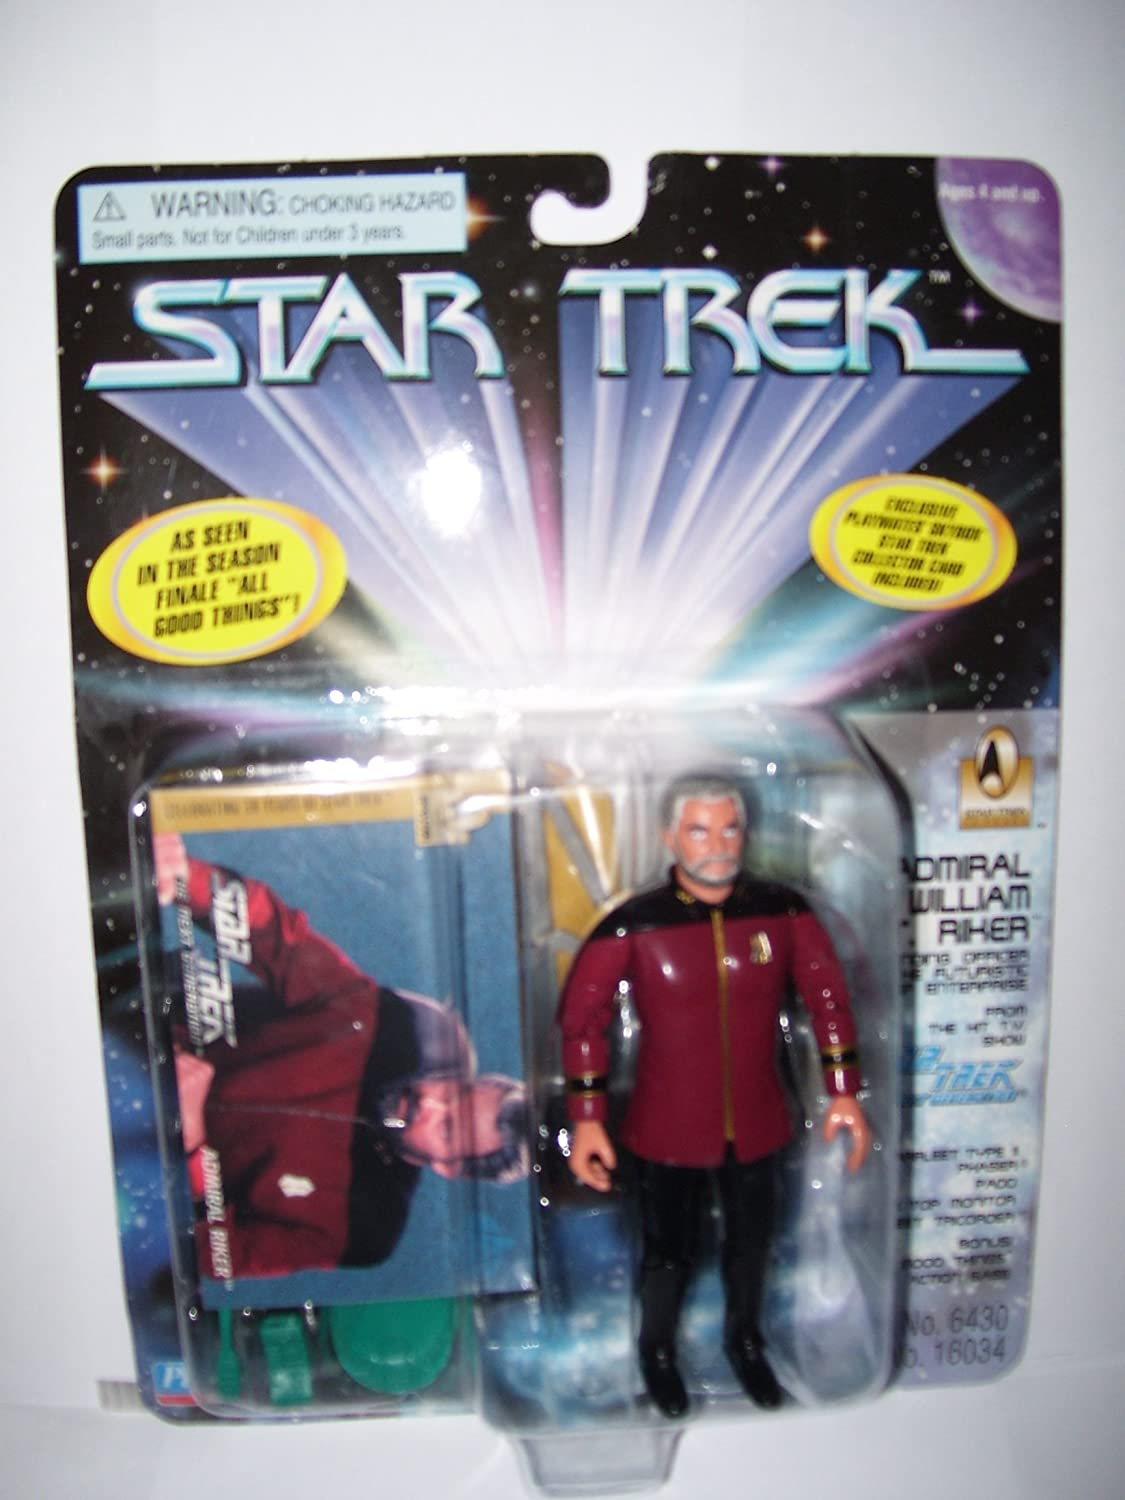 4.5 Admiral William T. Riker, Commanding Officer of the Futuristic Starship Enterprise As Seen in the Series Finale All Good Things - Star Trek: The Next Generation